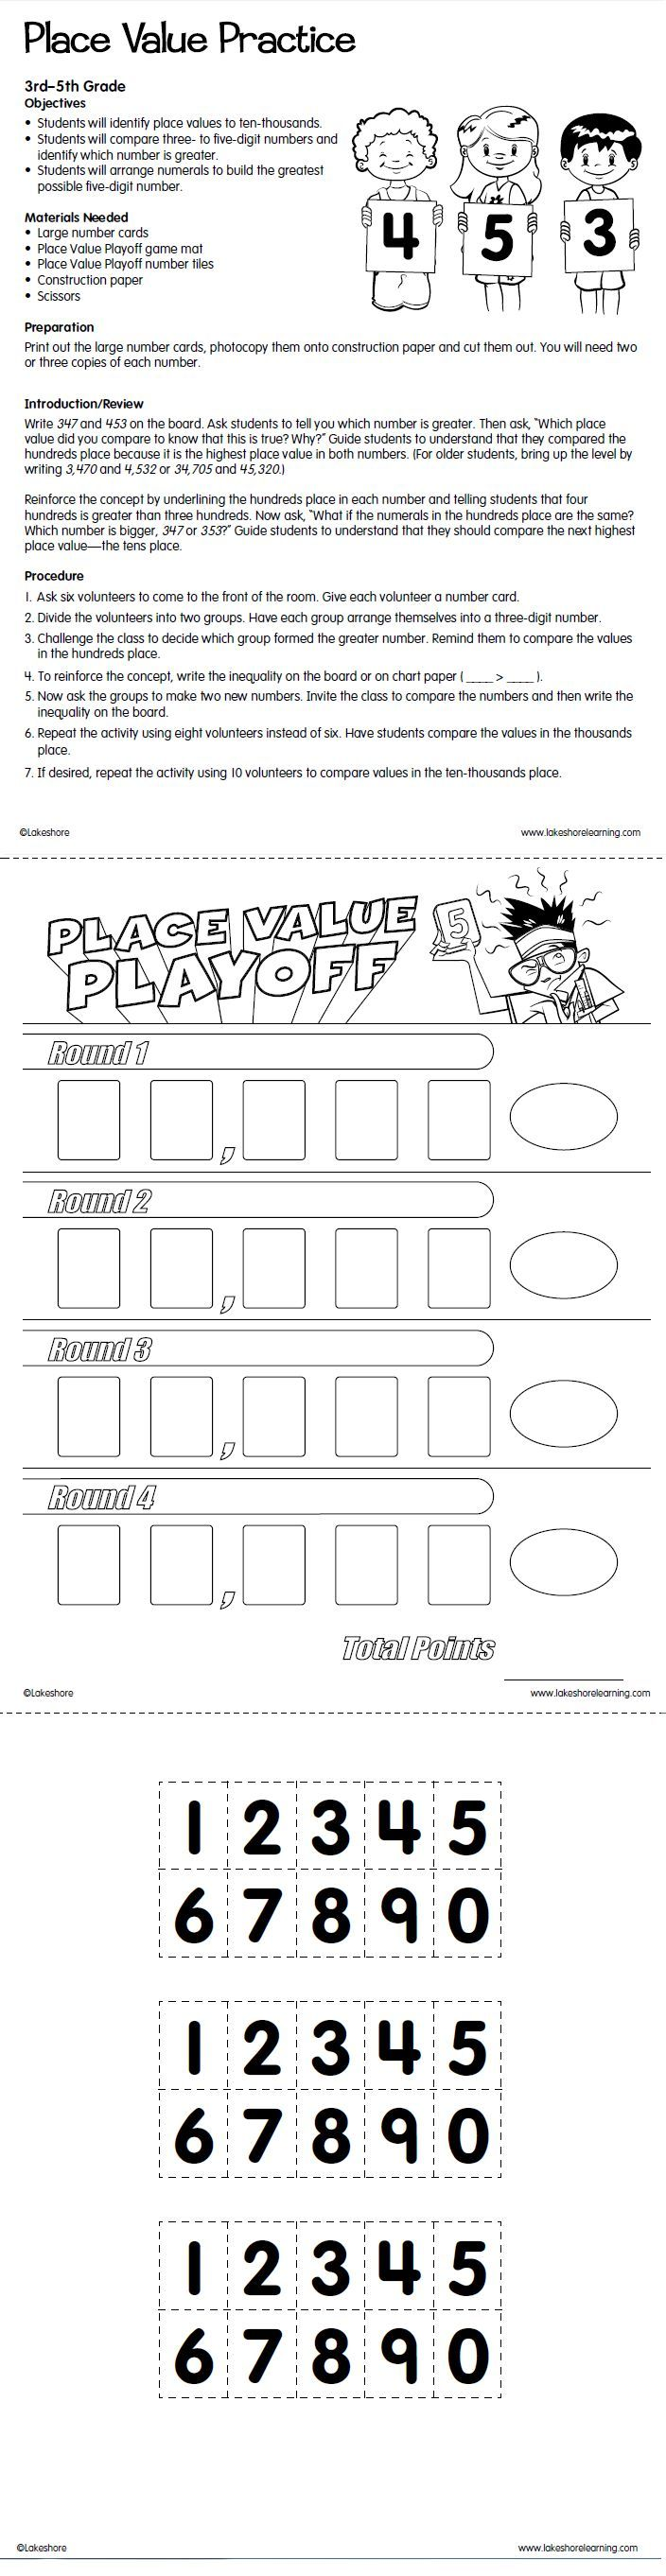 worksheet Place Value Practice get ready for 4th grade with lakeshores free place value practice printable areyouready